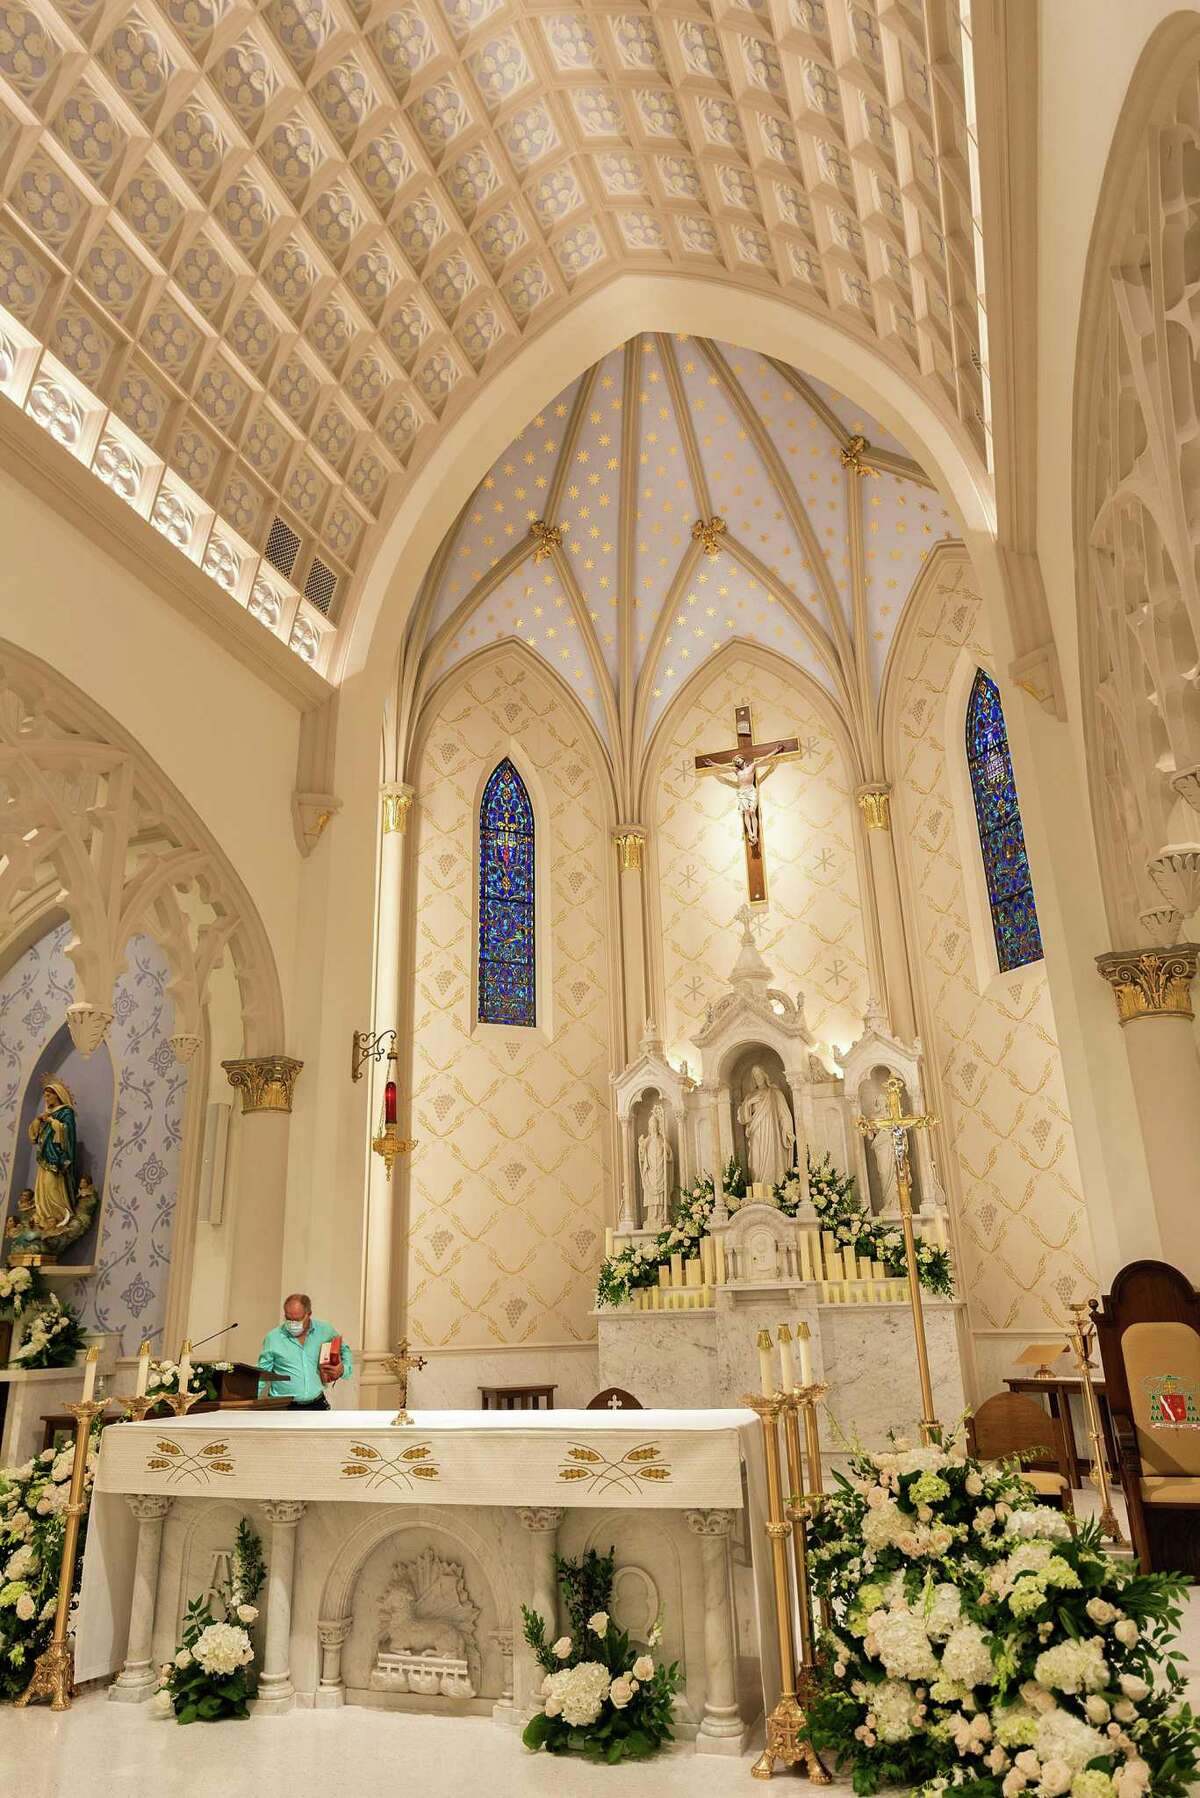 The altar of the newly renovated San Agustin Cathedral is cleared after a mass, Sunday, June 6, 2021.